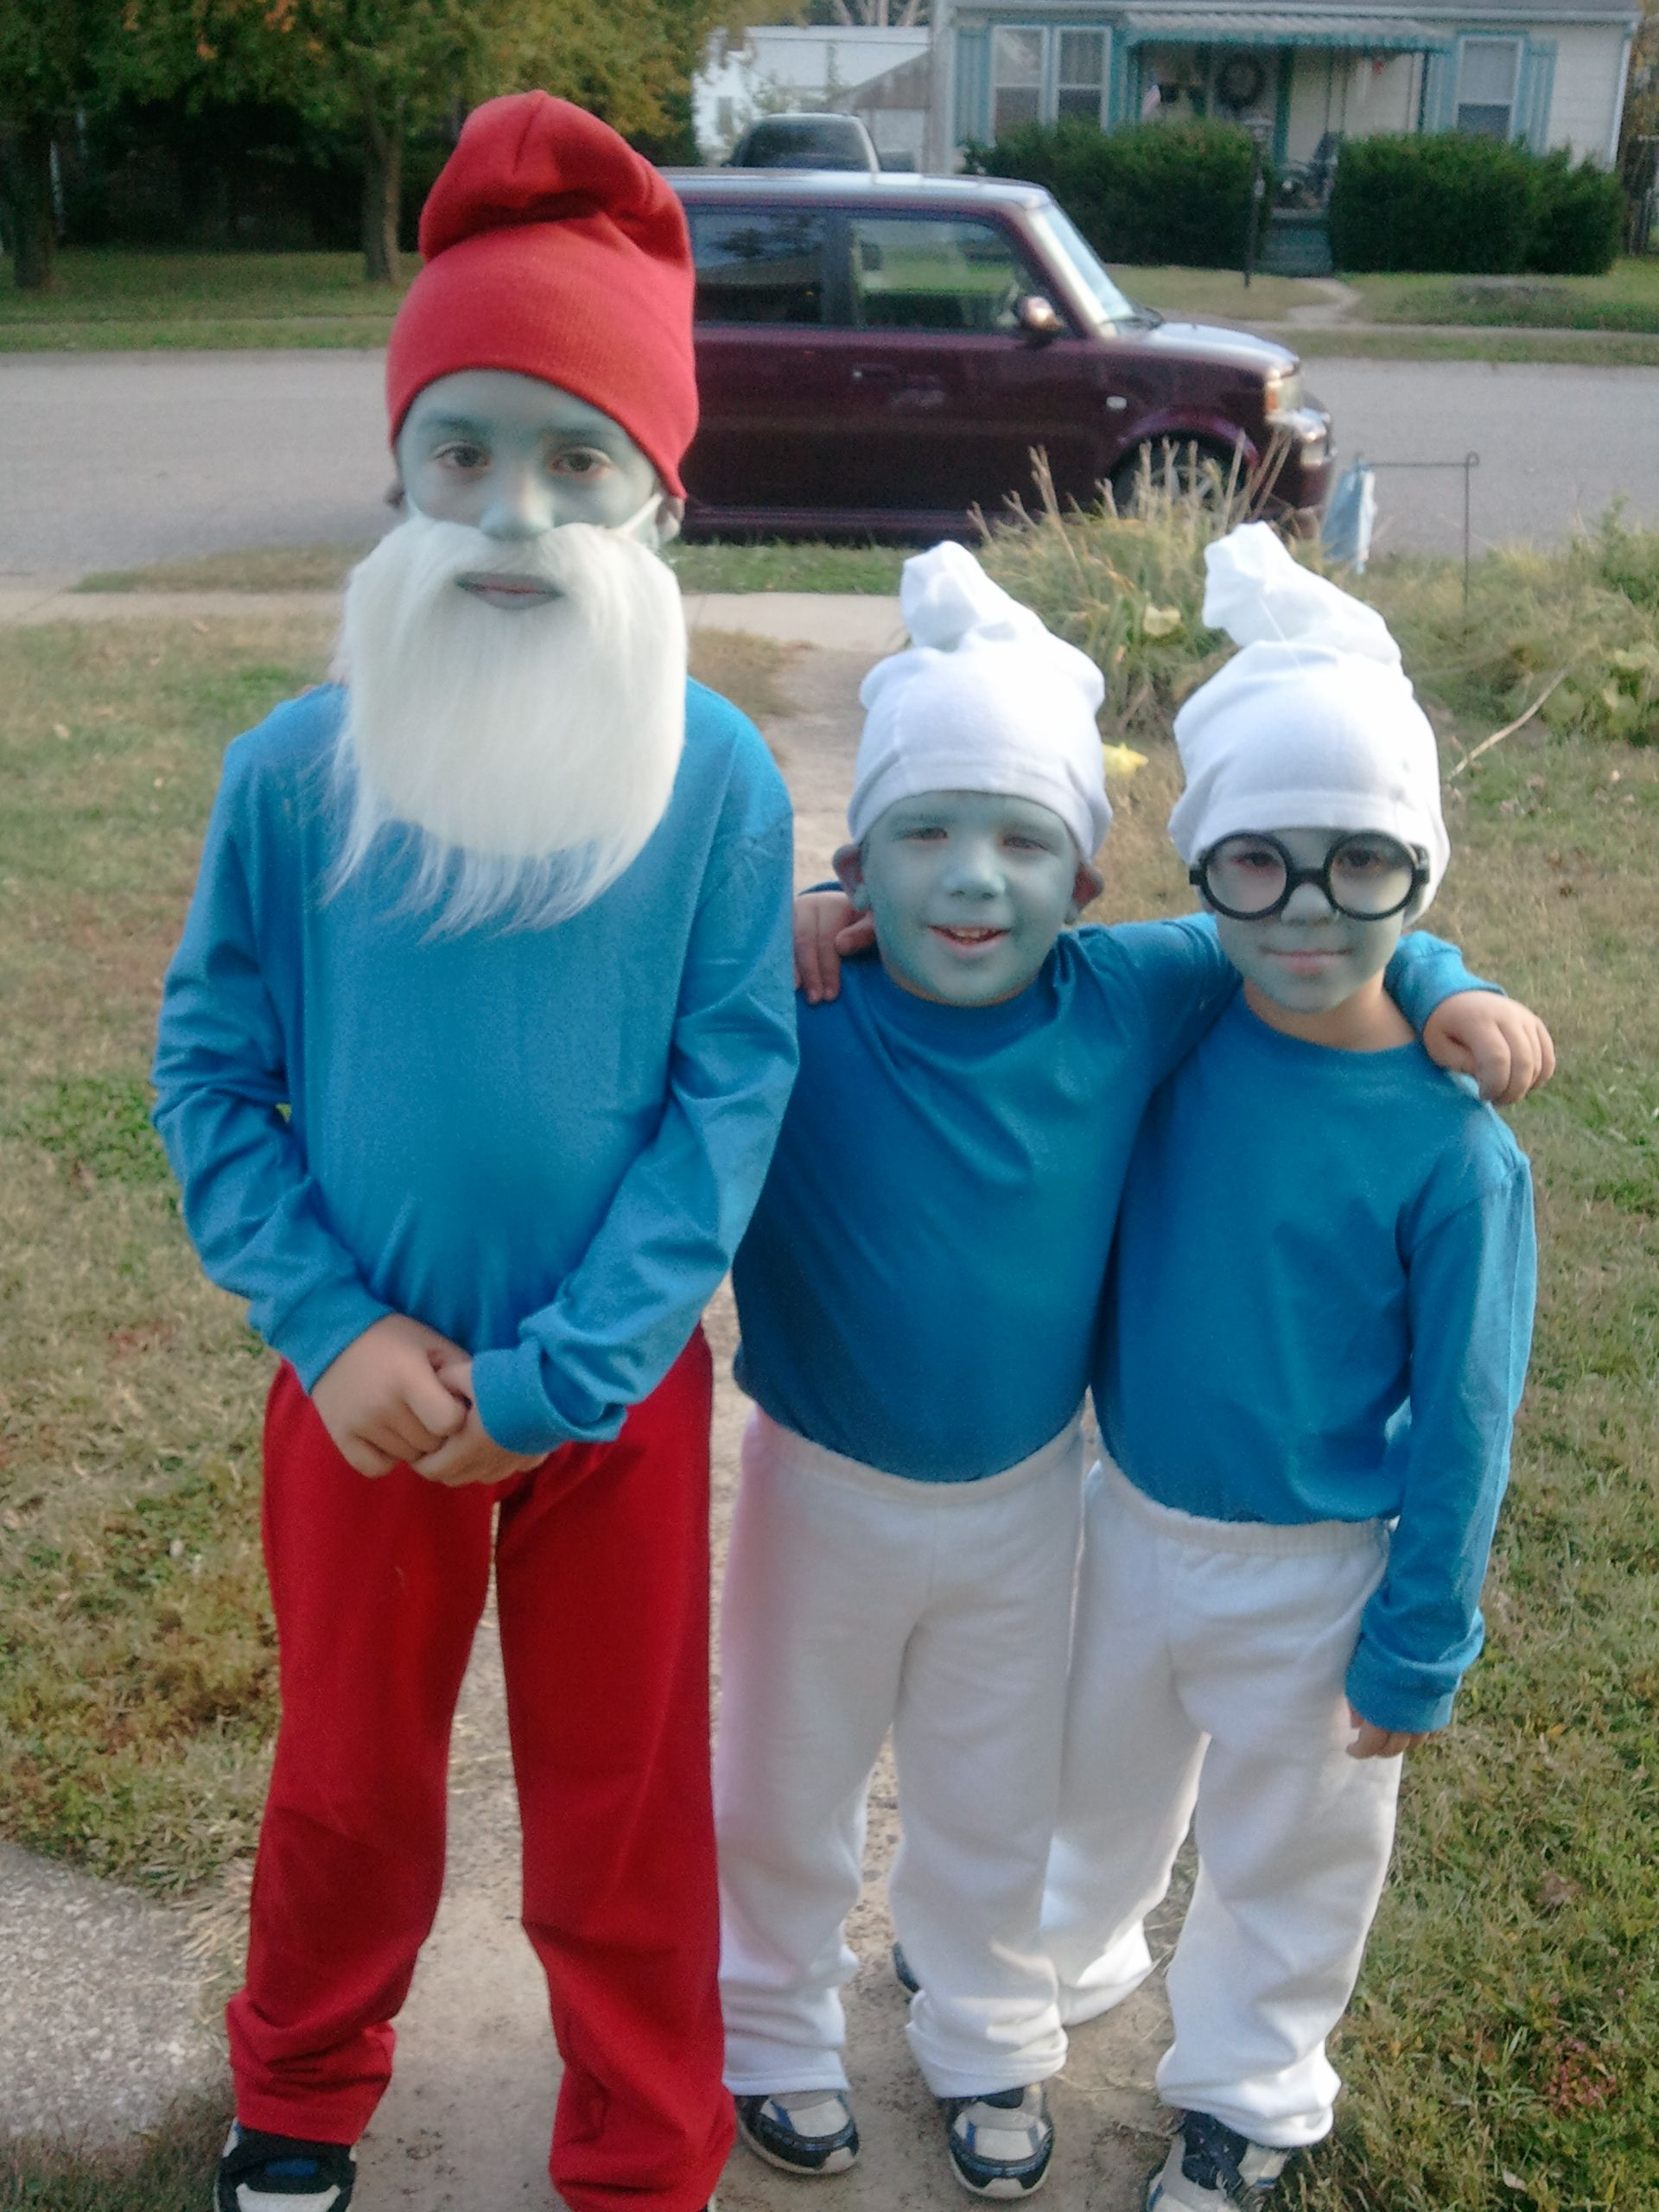 Home made smurf costumes. The cutest, sweetest kids EVER wearing ...